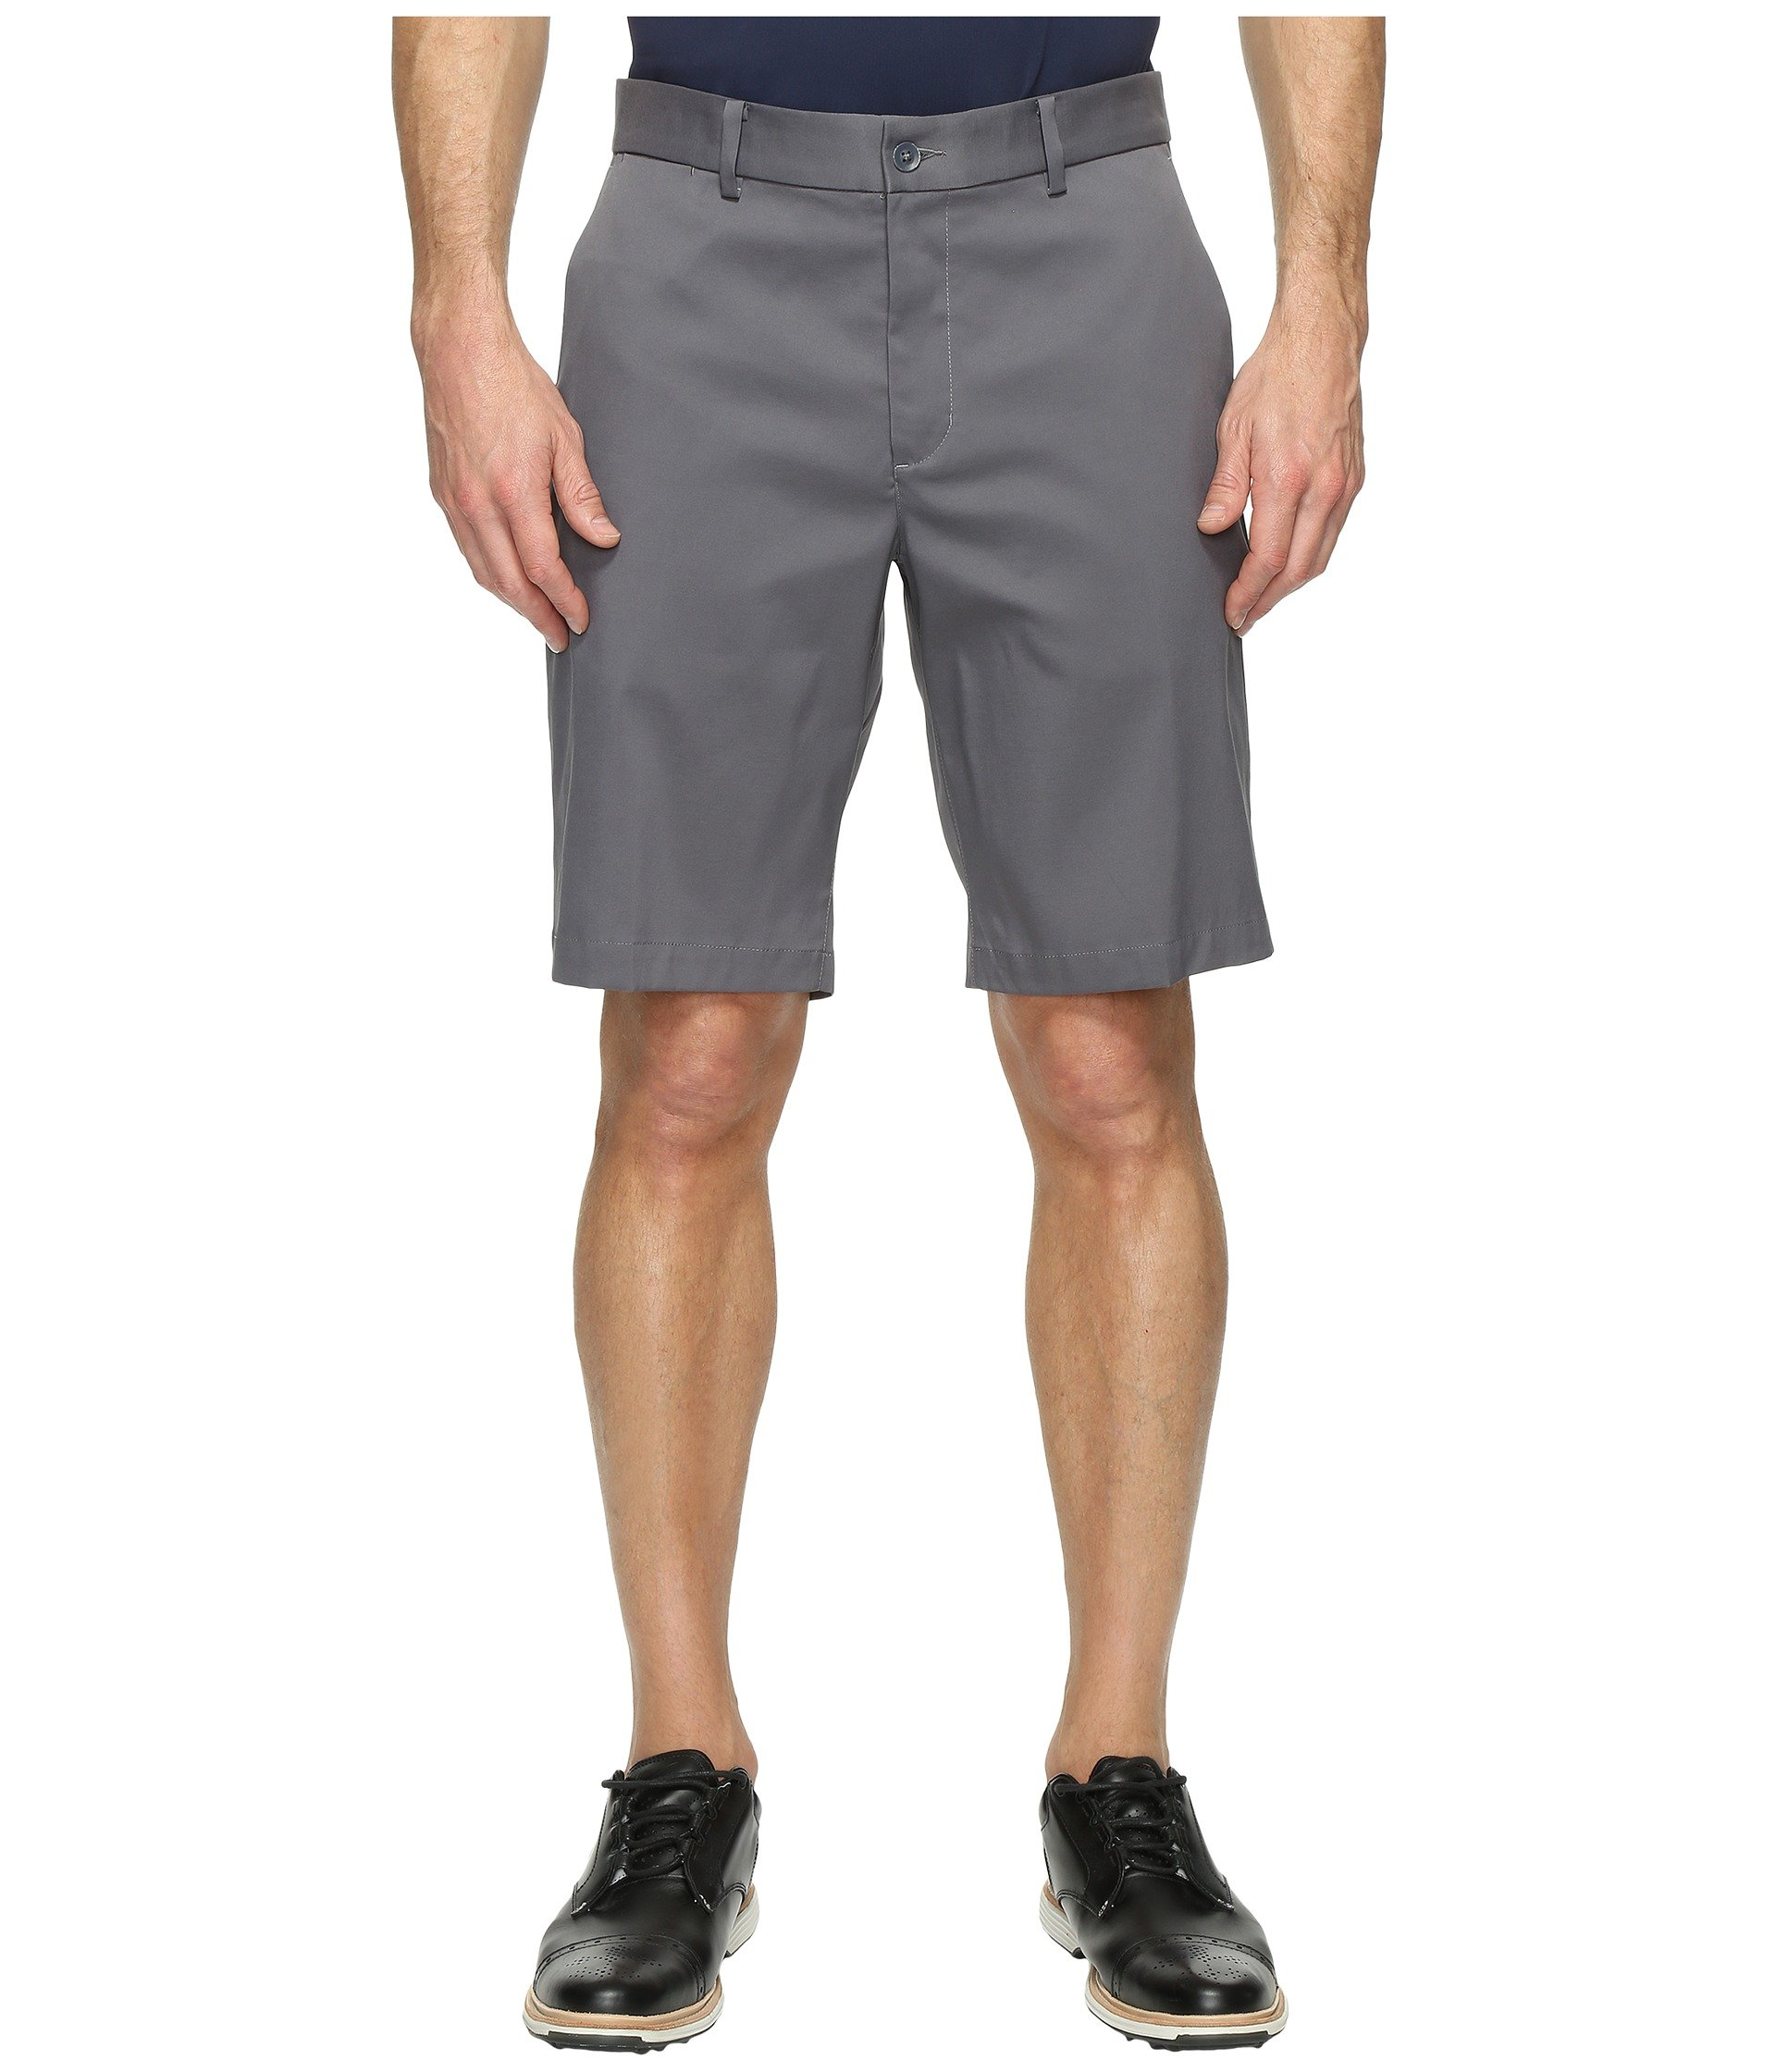 Nike Men's Flex Core Golf Shorts, Dark Grey, 38 by Nike